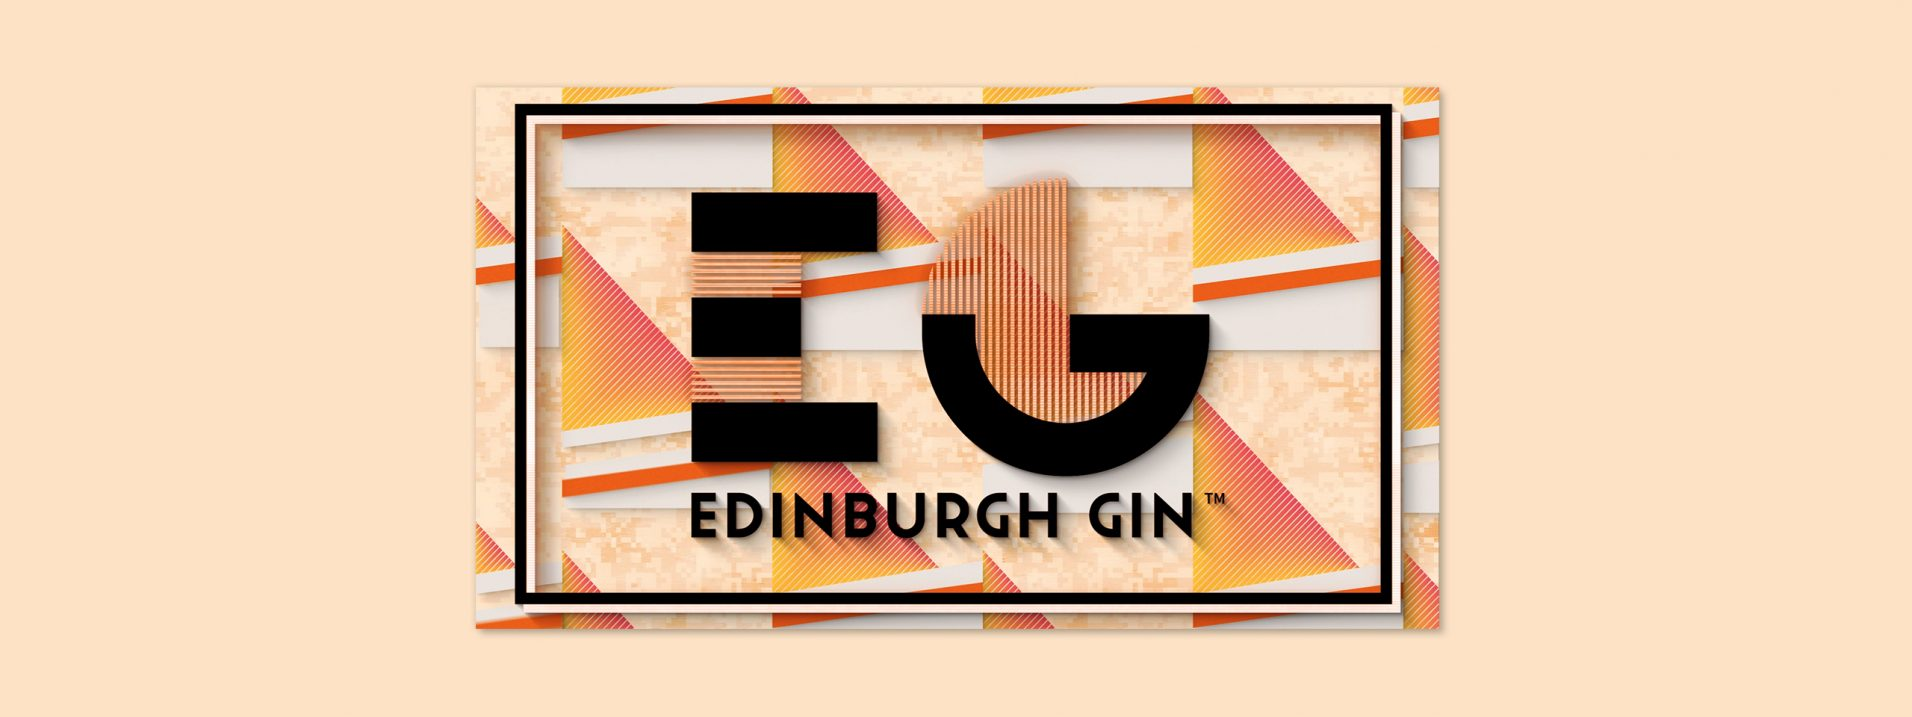 Edinburgh Gin Festival Cocktail Menu menu designed by Dephined